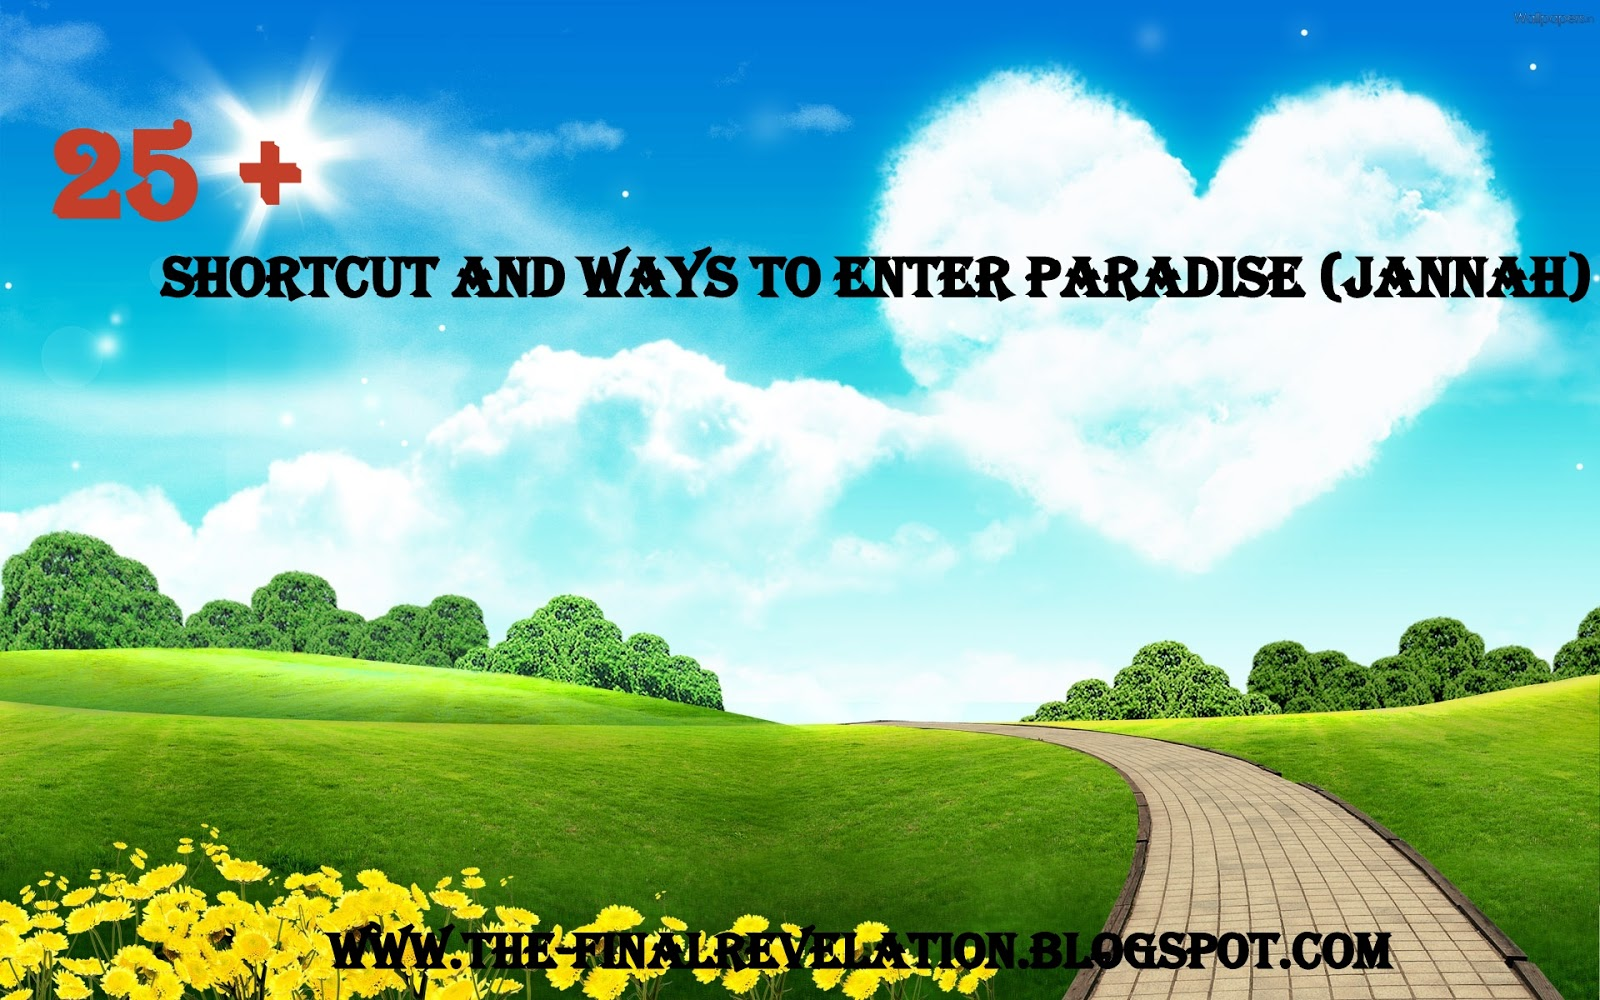 Islamic 3d Wallpapers For Pc Free Download 25 Shortcut And Ways To Enter Paradise Jannah The